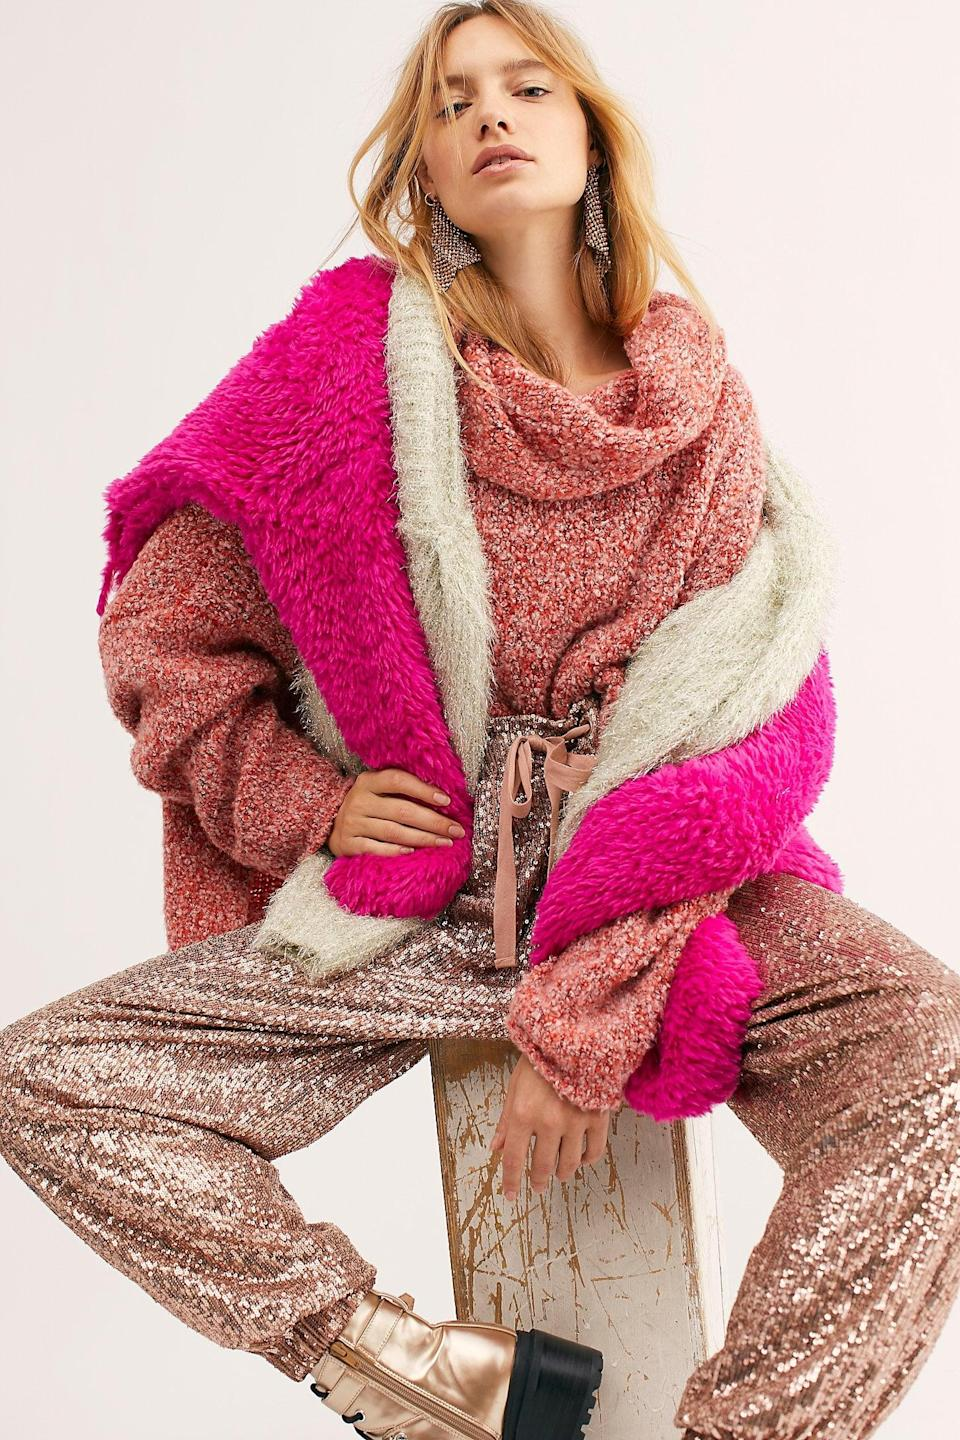 """<p>Get this <a href=""""https://www.popsugar.com/buy/Bff-Sweater-527163?p_name=Bff%20Sweater&retailer=freepeople.com&pid=527163&price=98&evar1=fab%3Aus&evar9=45460327&evar98=https%3A%2F%2Fwww.popsugar.com%2Ffashion%2Fphoto-gallery%2F45460327%2Fimage%2F46978014%2FBff-Sweater&list1=shopping%2Cgifts%2Cfree%20people%2Choliday%2Cgift%20guide%2Cgifts%20for%20women&prop13=api&pdata=1"""" class=""""link rapid-noclick-resp"""" rel=""""nofollow noopener"""" target=""""_blank"""" data-ylk=""""slk:Bff Sweater"""">Bff Sweater</a> ($98) for your friend who wants to be cozy.</p>"""